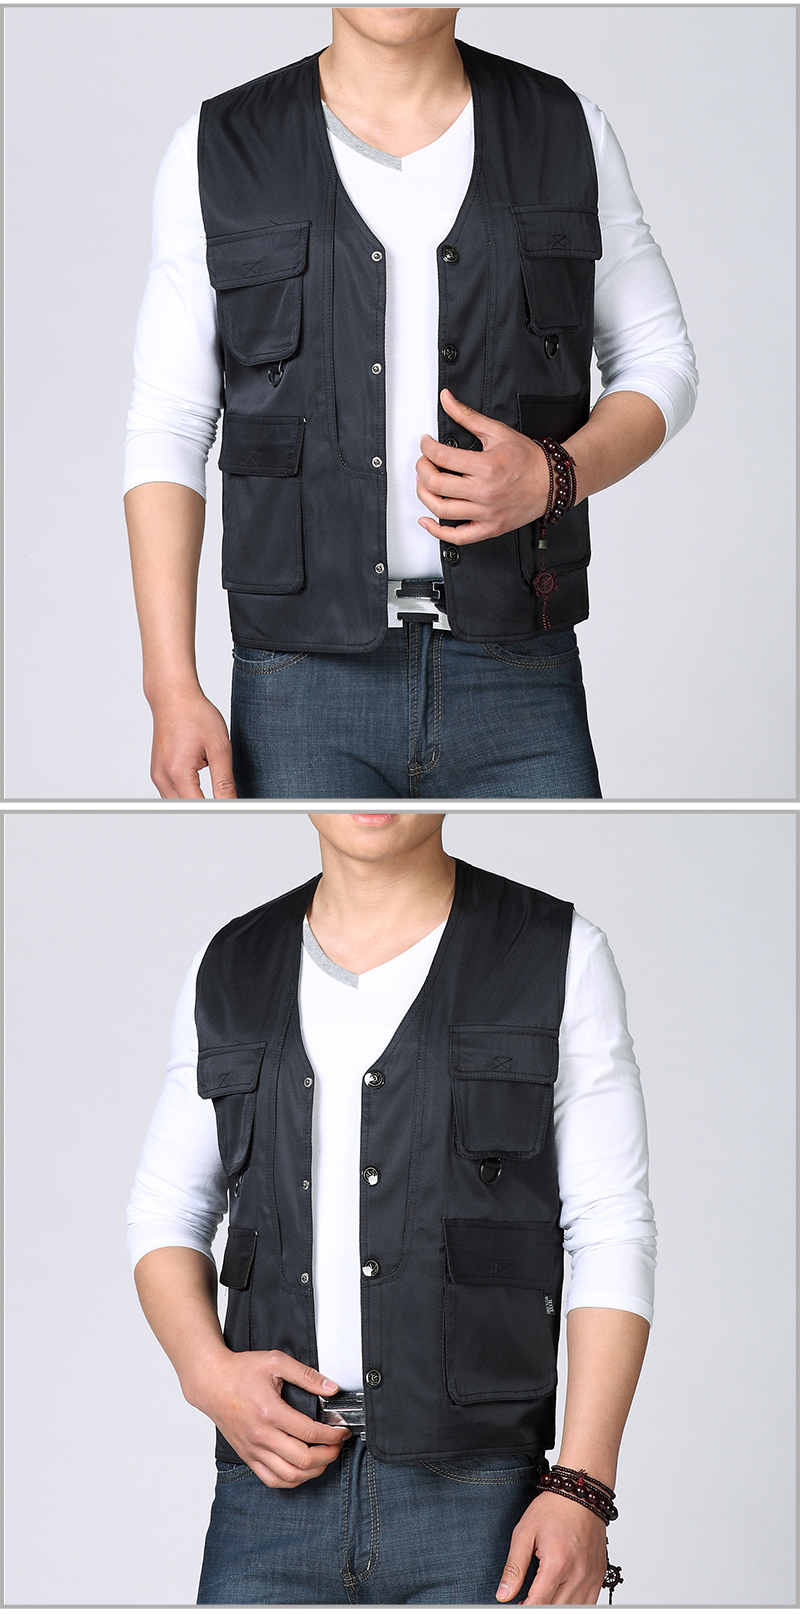 Spring Autumn Man Casual Vest Army Green Black Waistcoat For Men Leisure Gilet Male Herringbone Vest Multi Pockets Waistcoat Mens Weskit (7)